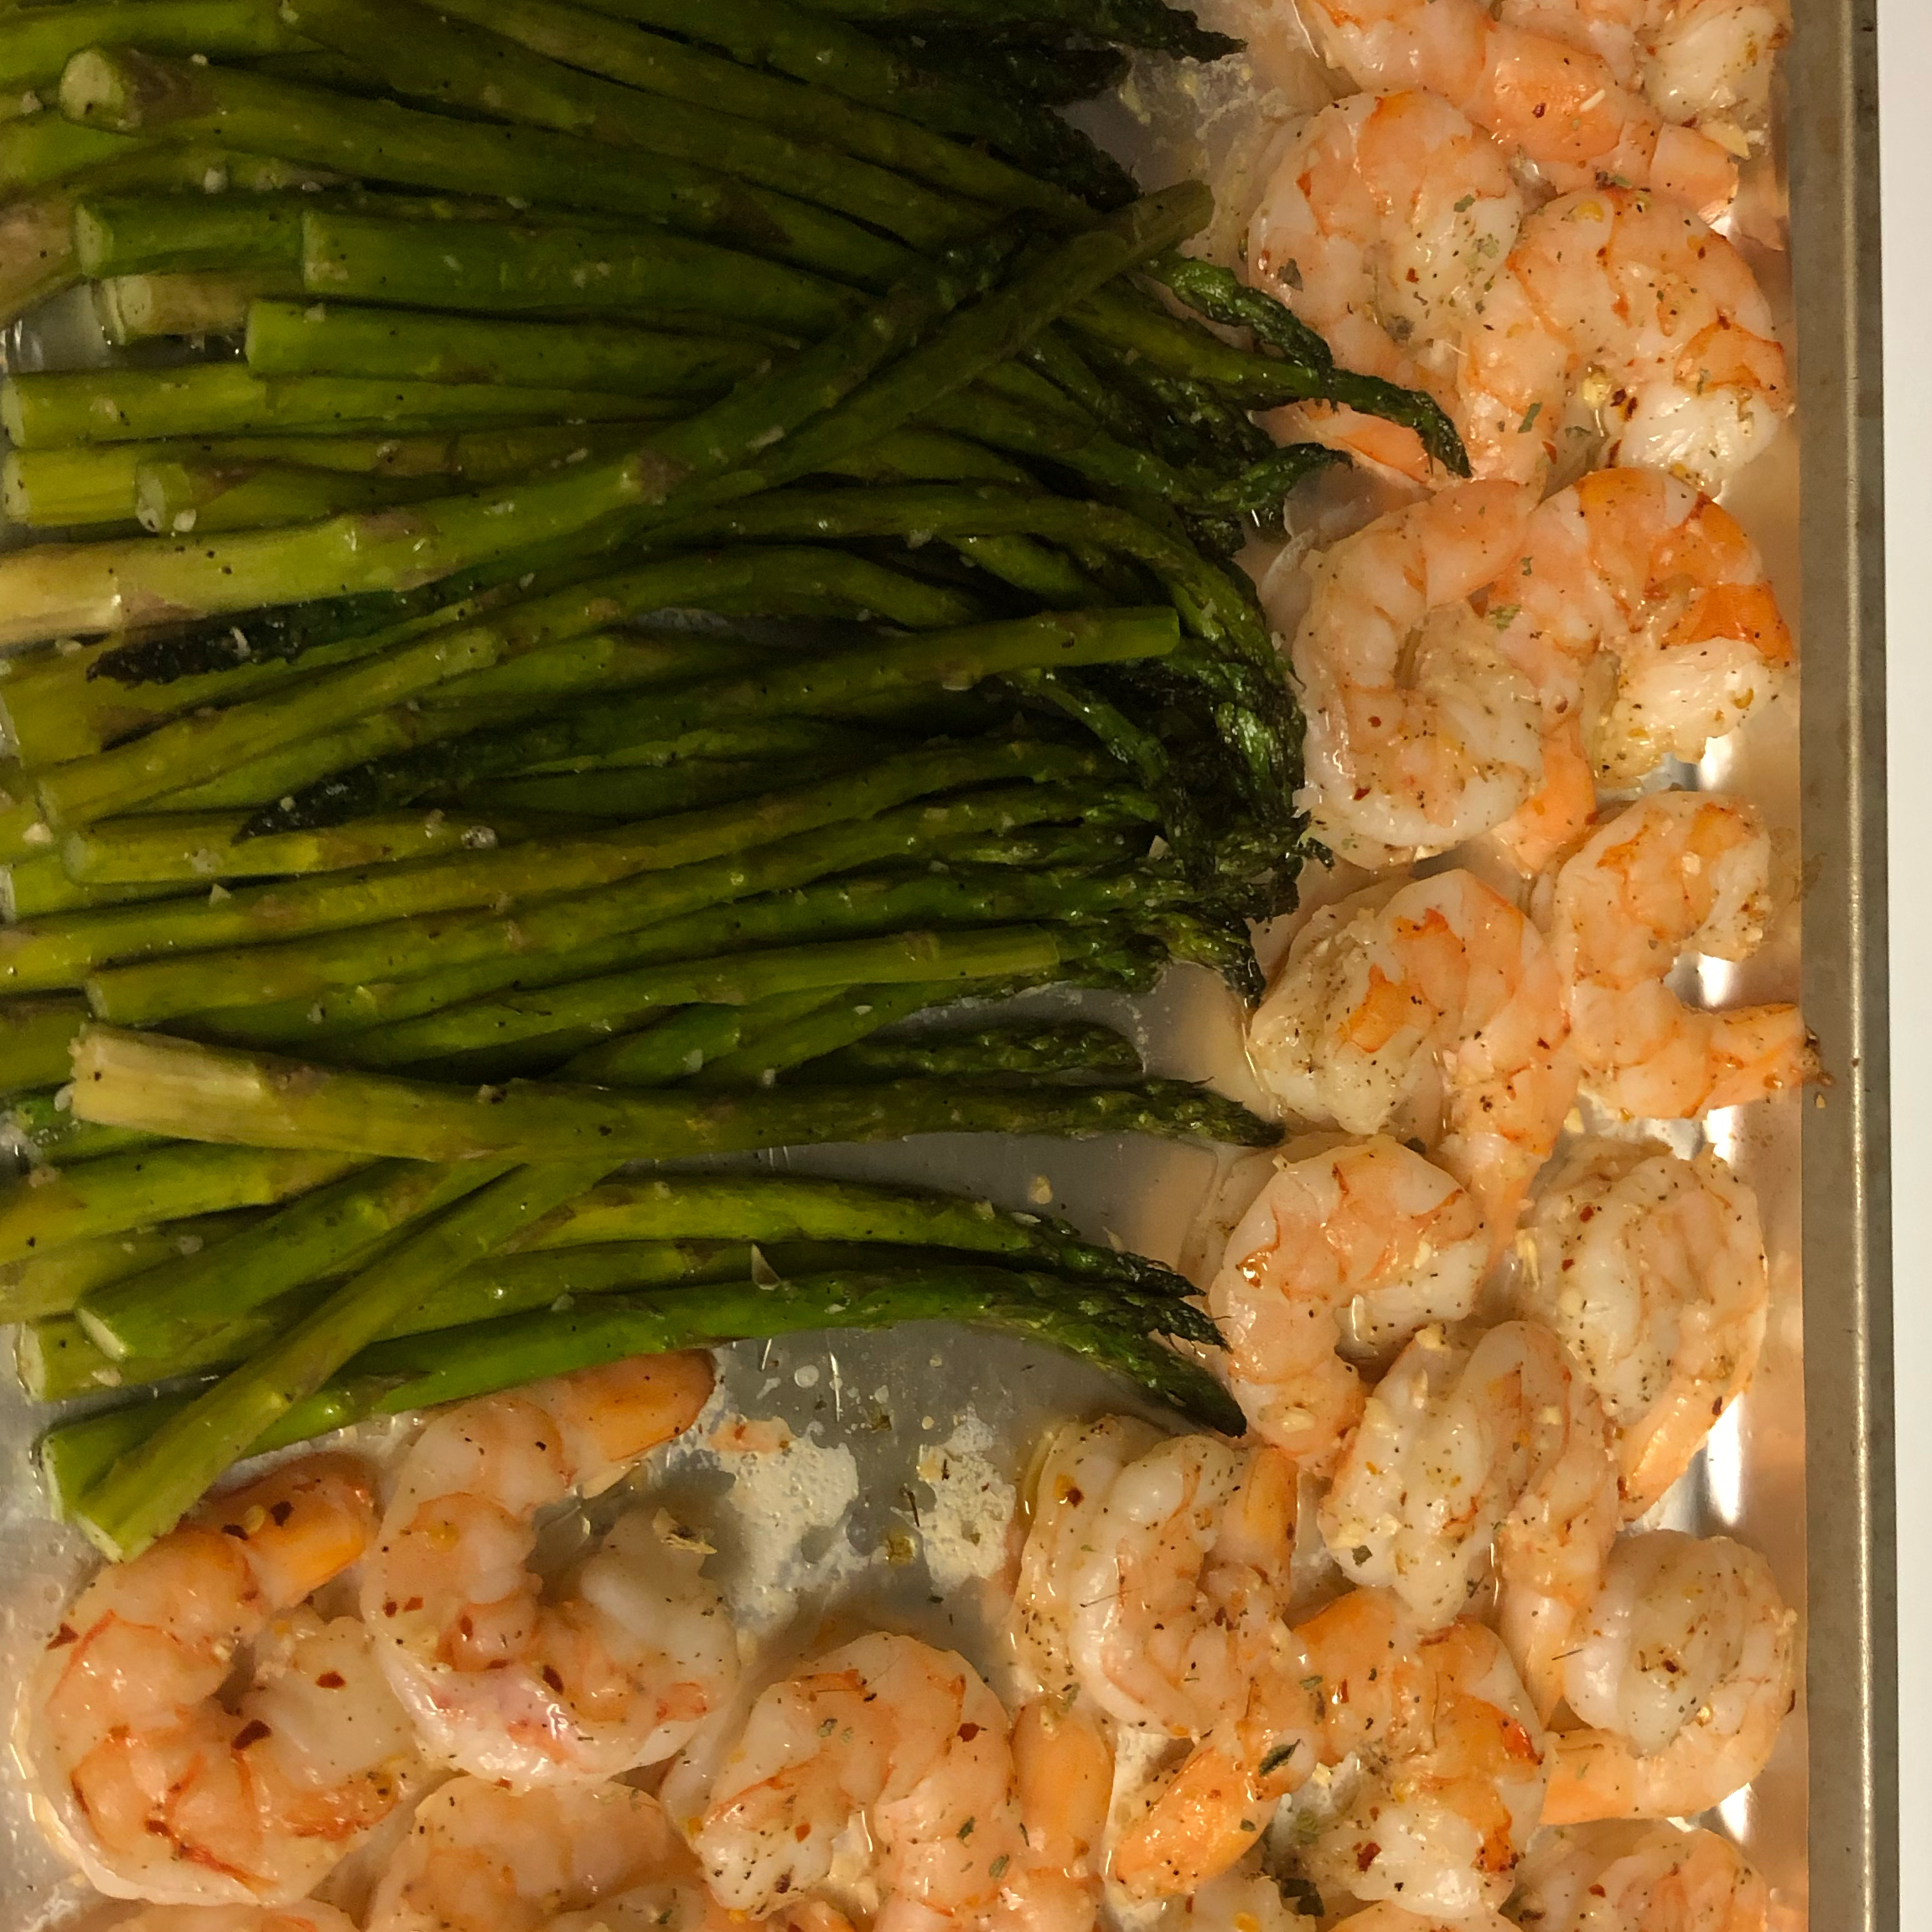 Sheet Pan Lemon Butter Garlic Shrimp with Asparagus